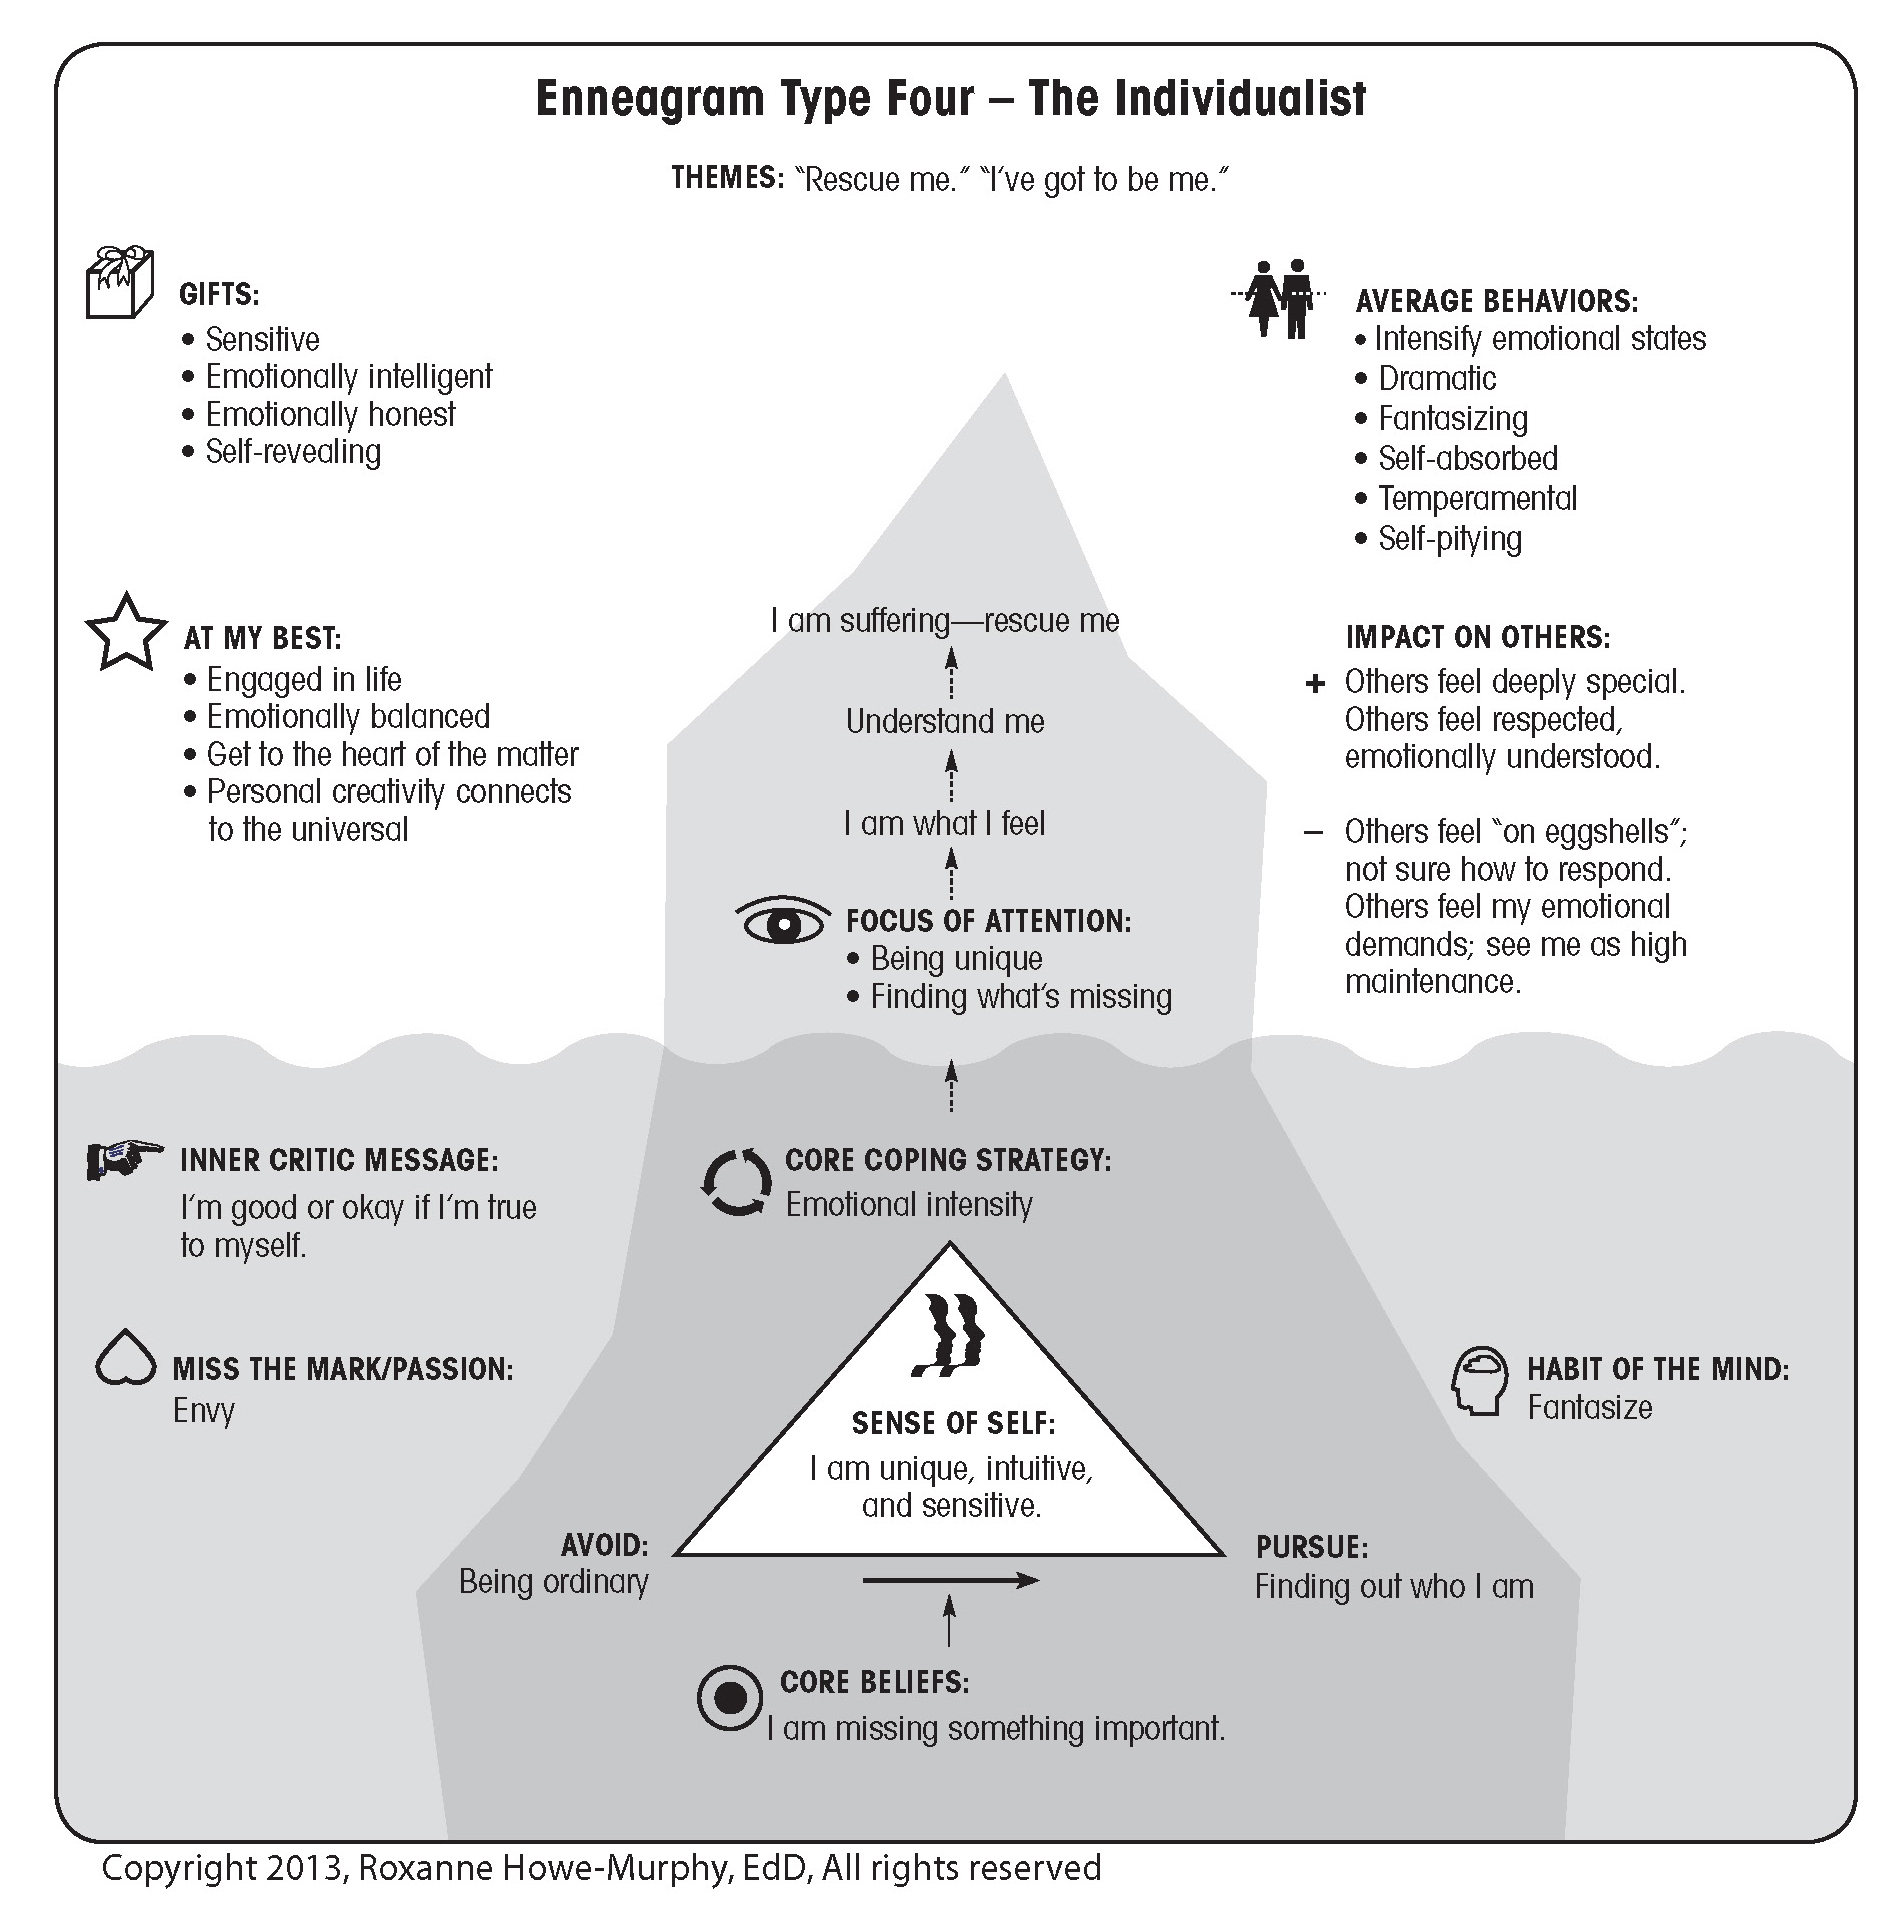 enneagram type 2 and 7 in relationship